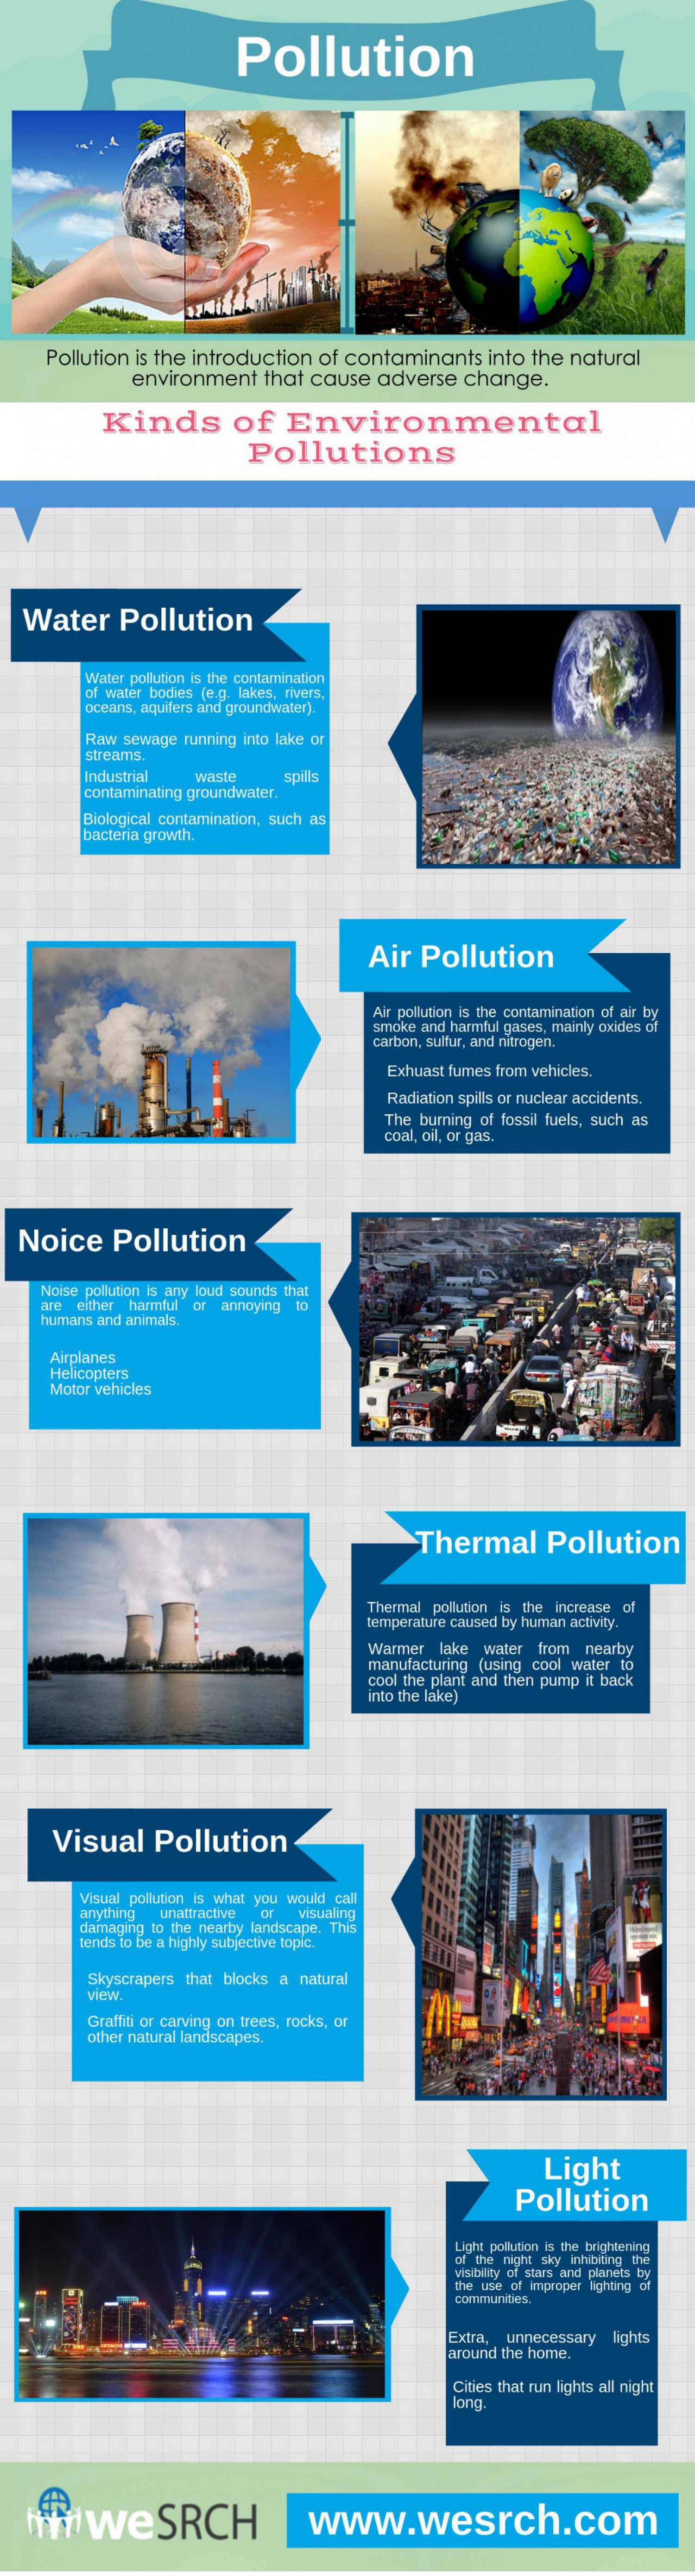 Kinds Of Environmental Pollutions